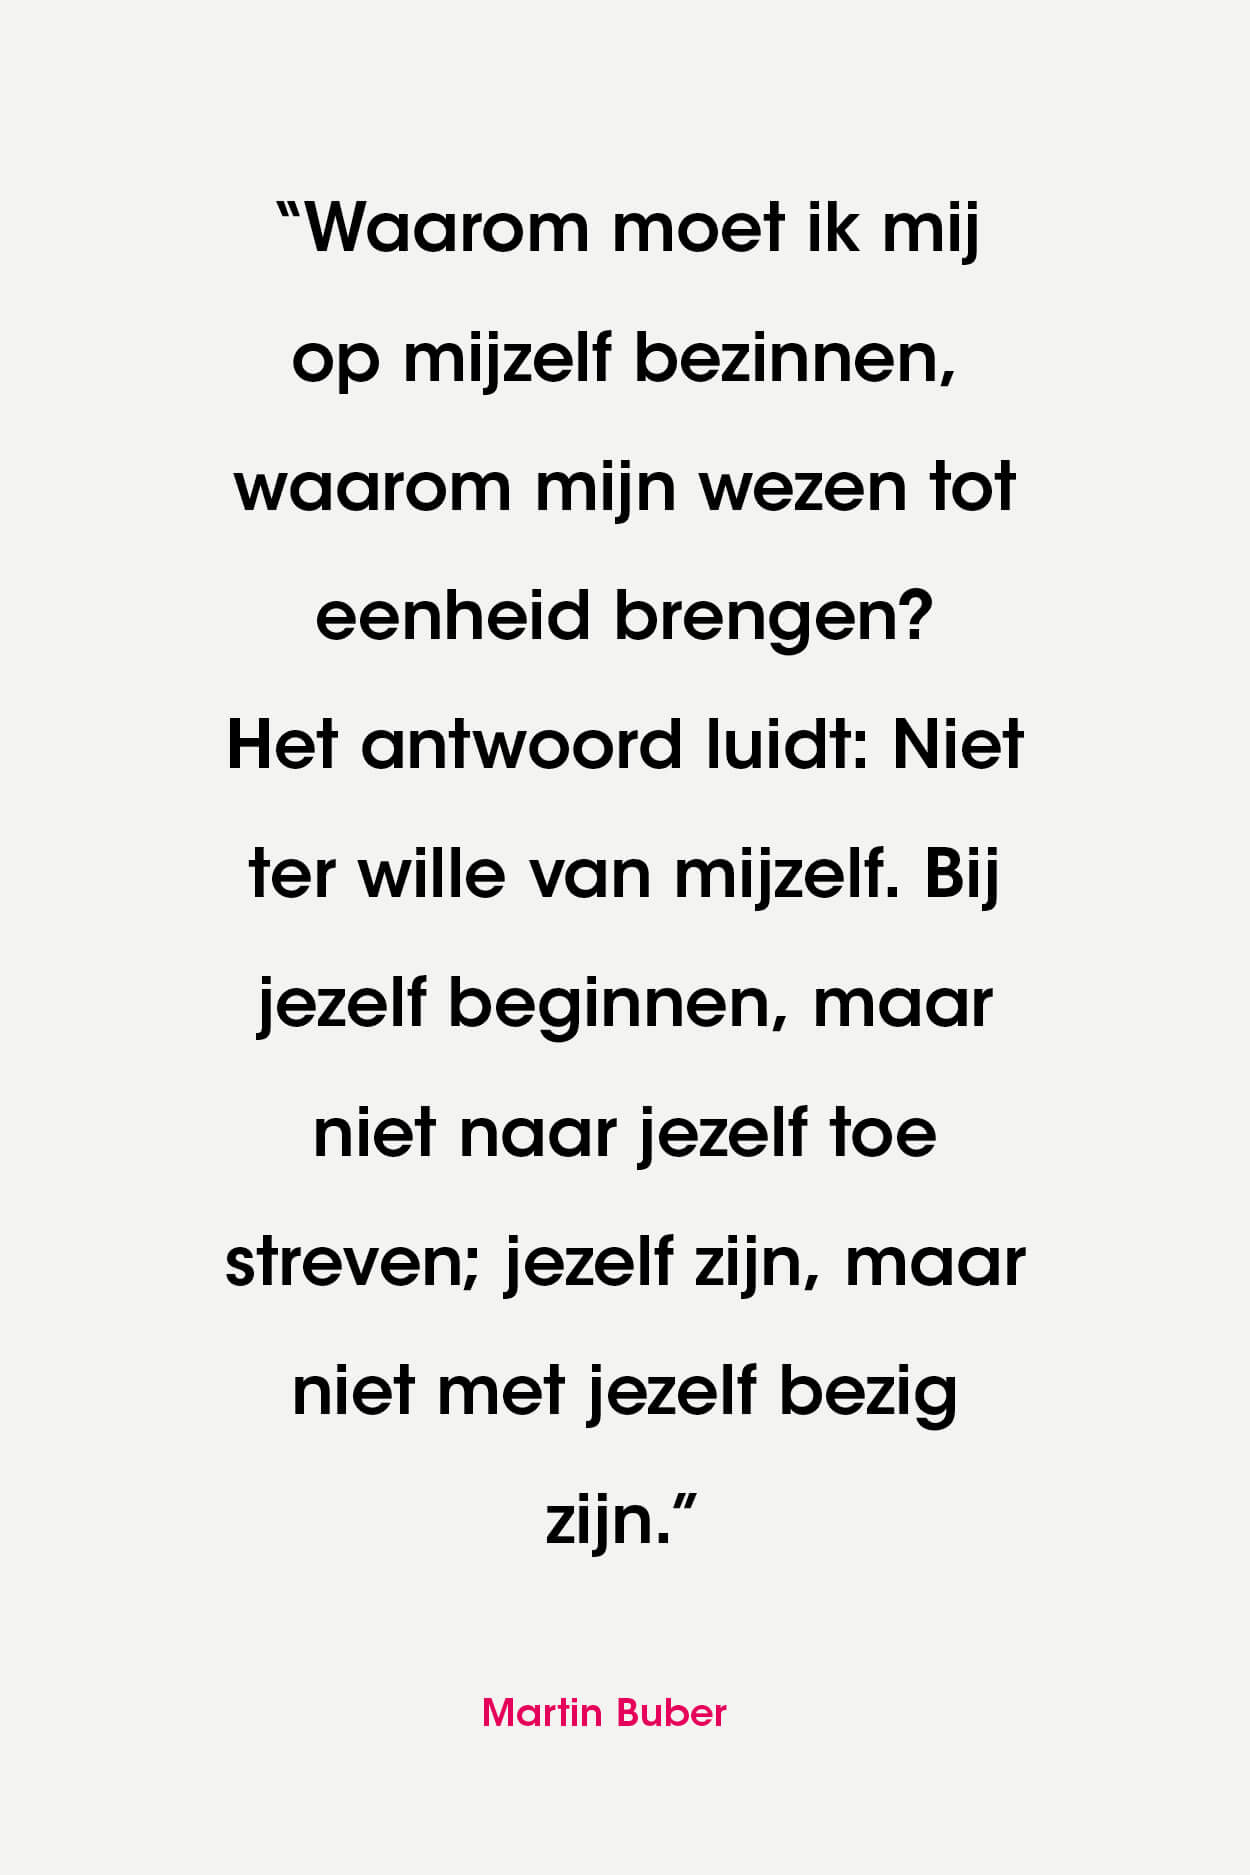 VHL-Quote Martin Buber